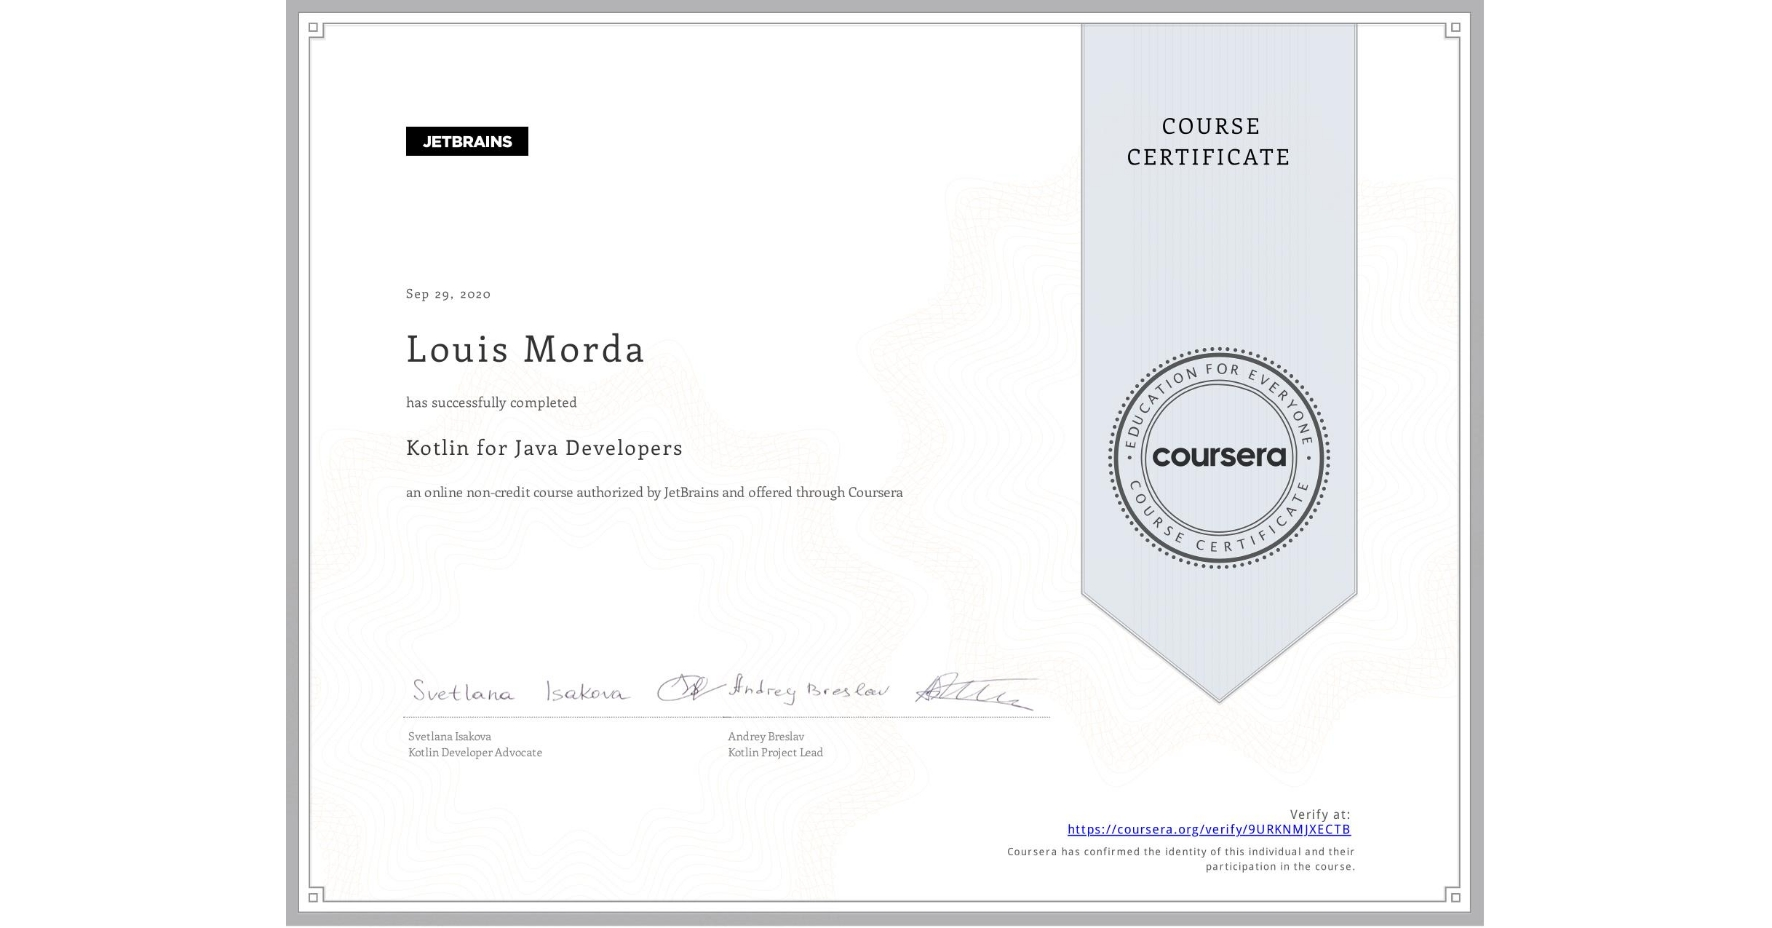 View certificate for Louis Morda, Kotlin for Java Developers, an online non-credit course authorized by JetBrains and offered through Coursera